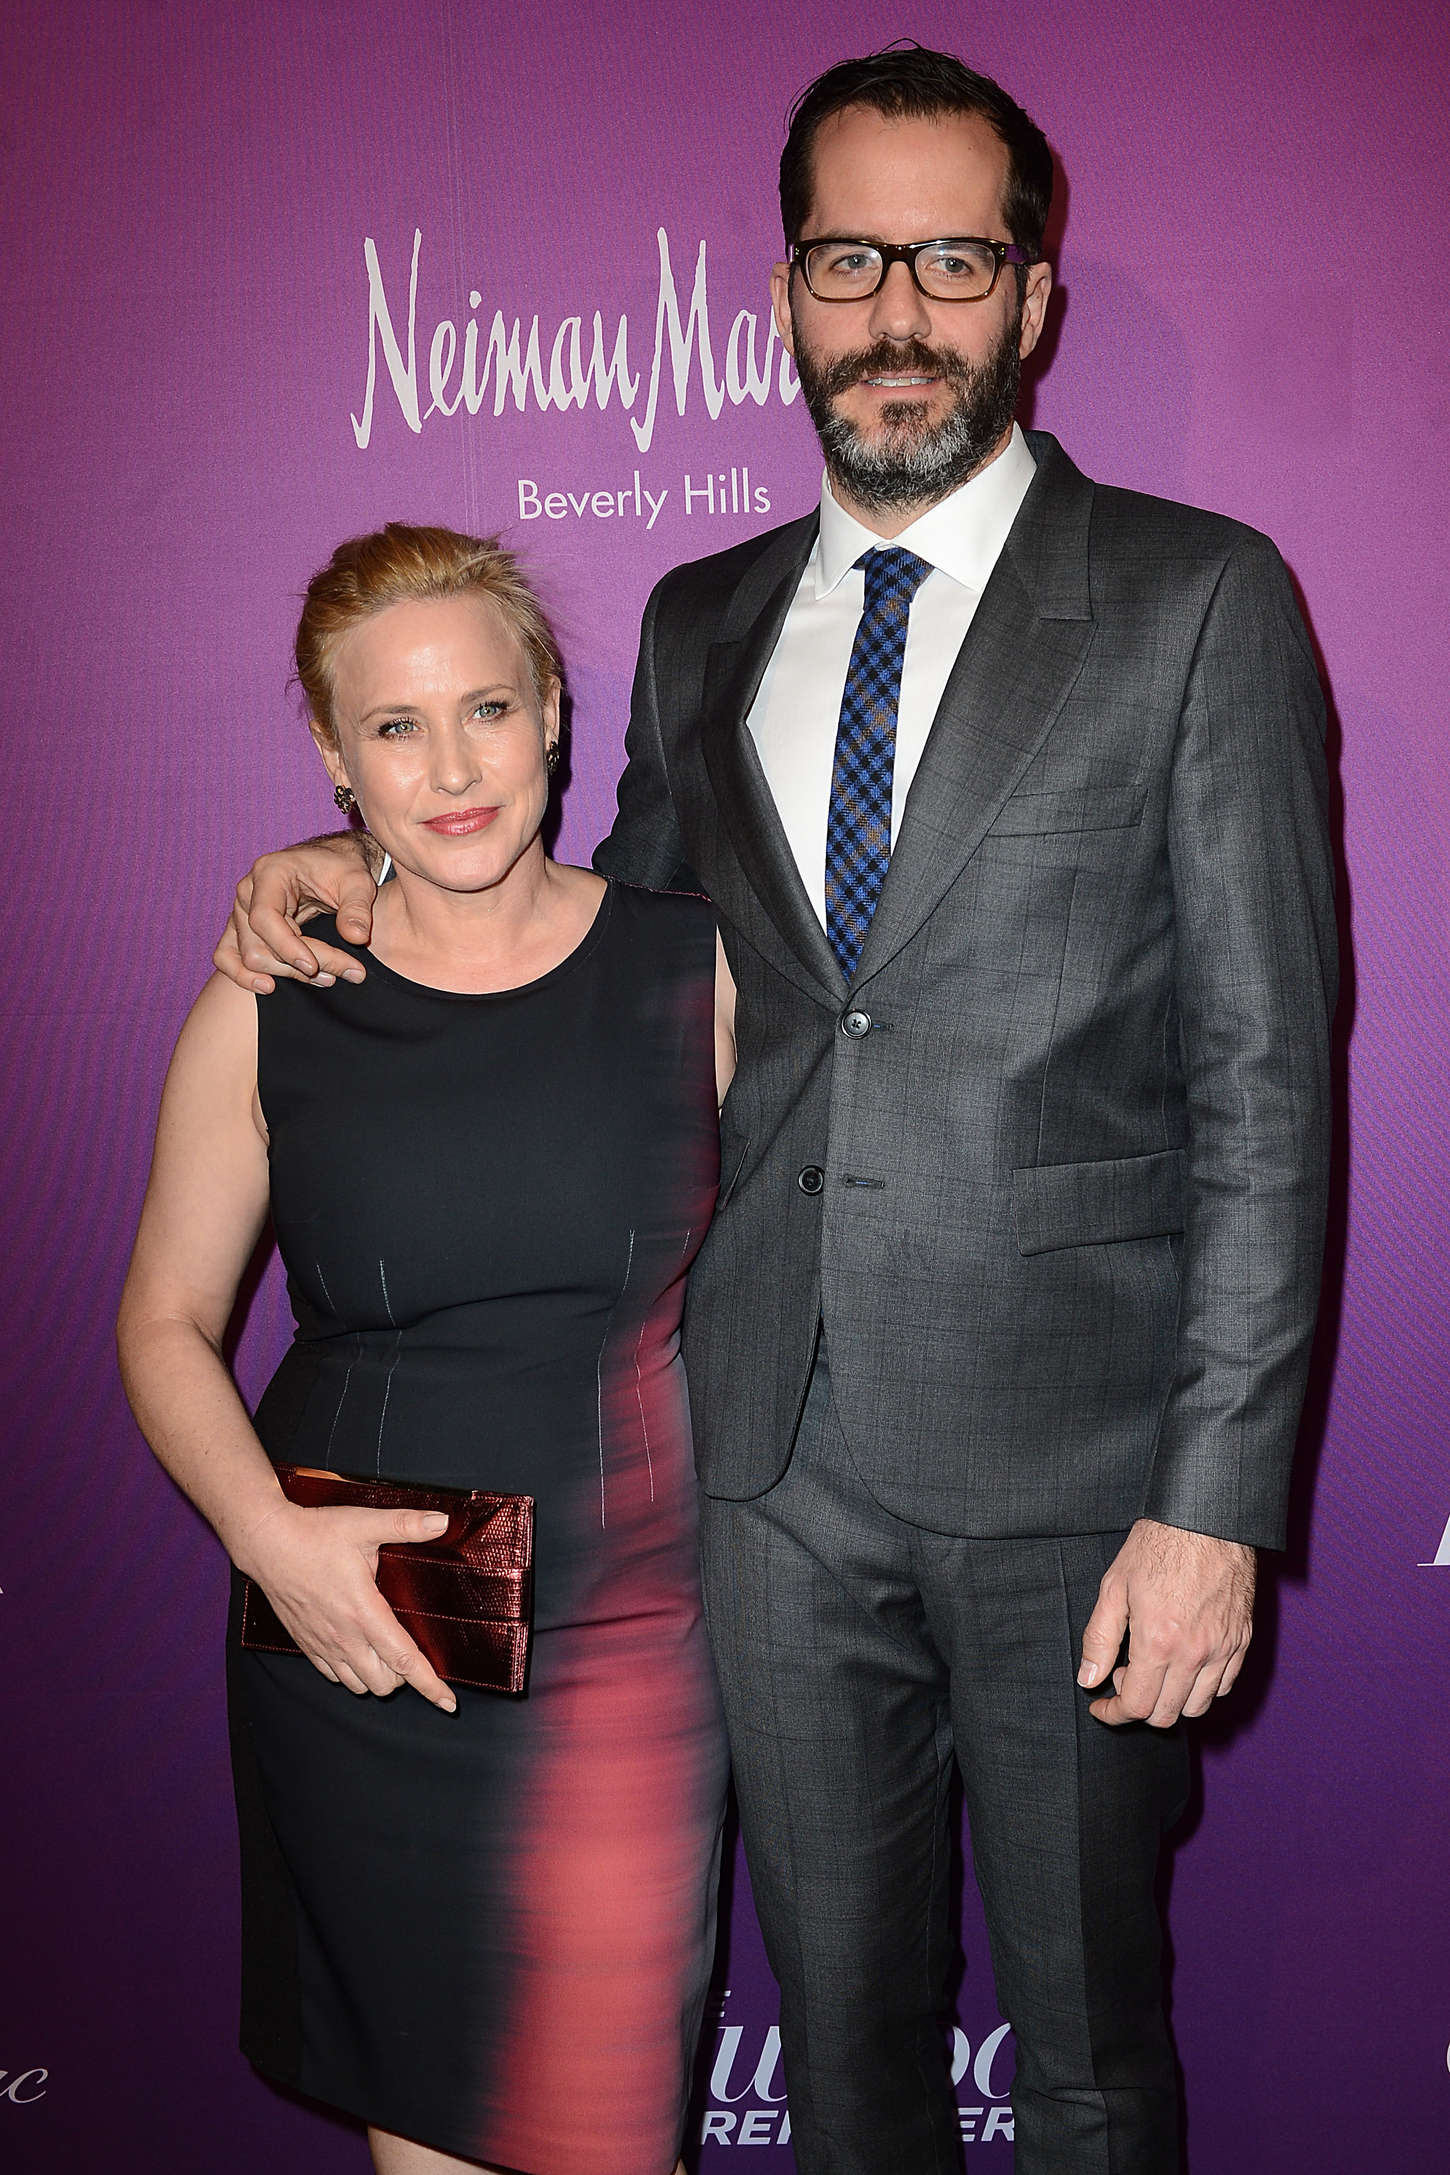 Patricia Arquette The Hollywood Reporters Annual Nominees Night in Los Angeles